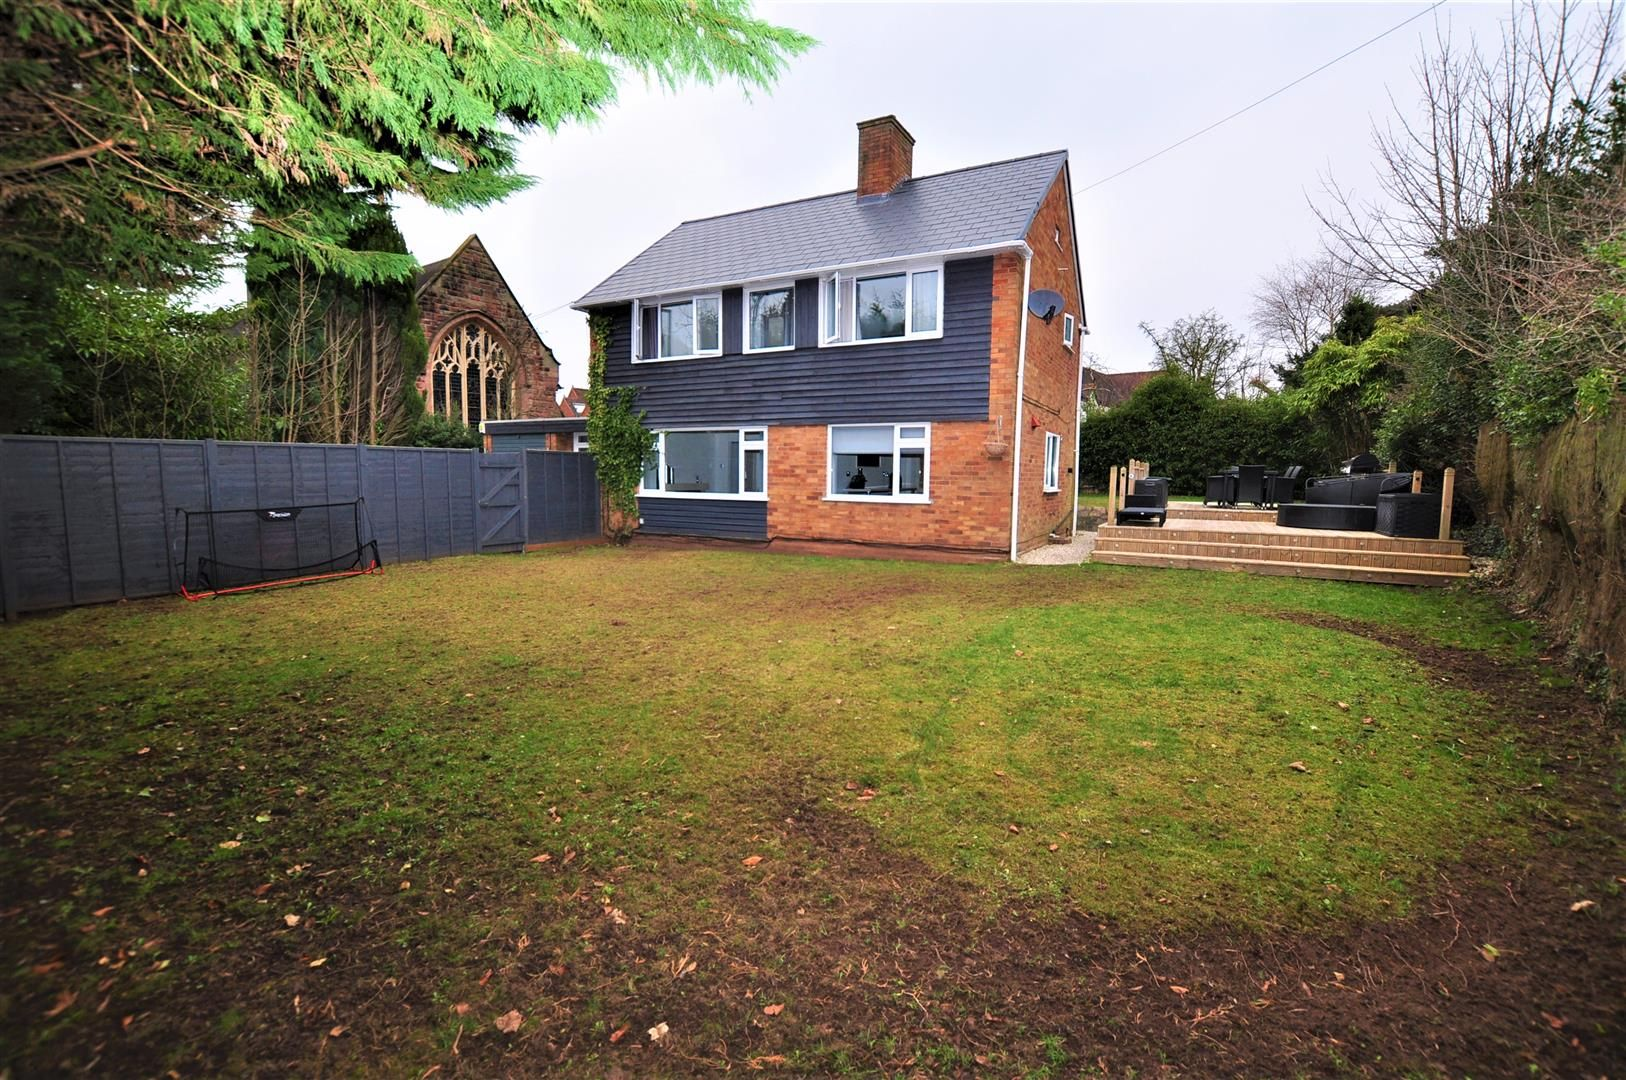 3 bed detached for sale in Hagley 17